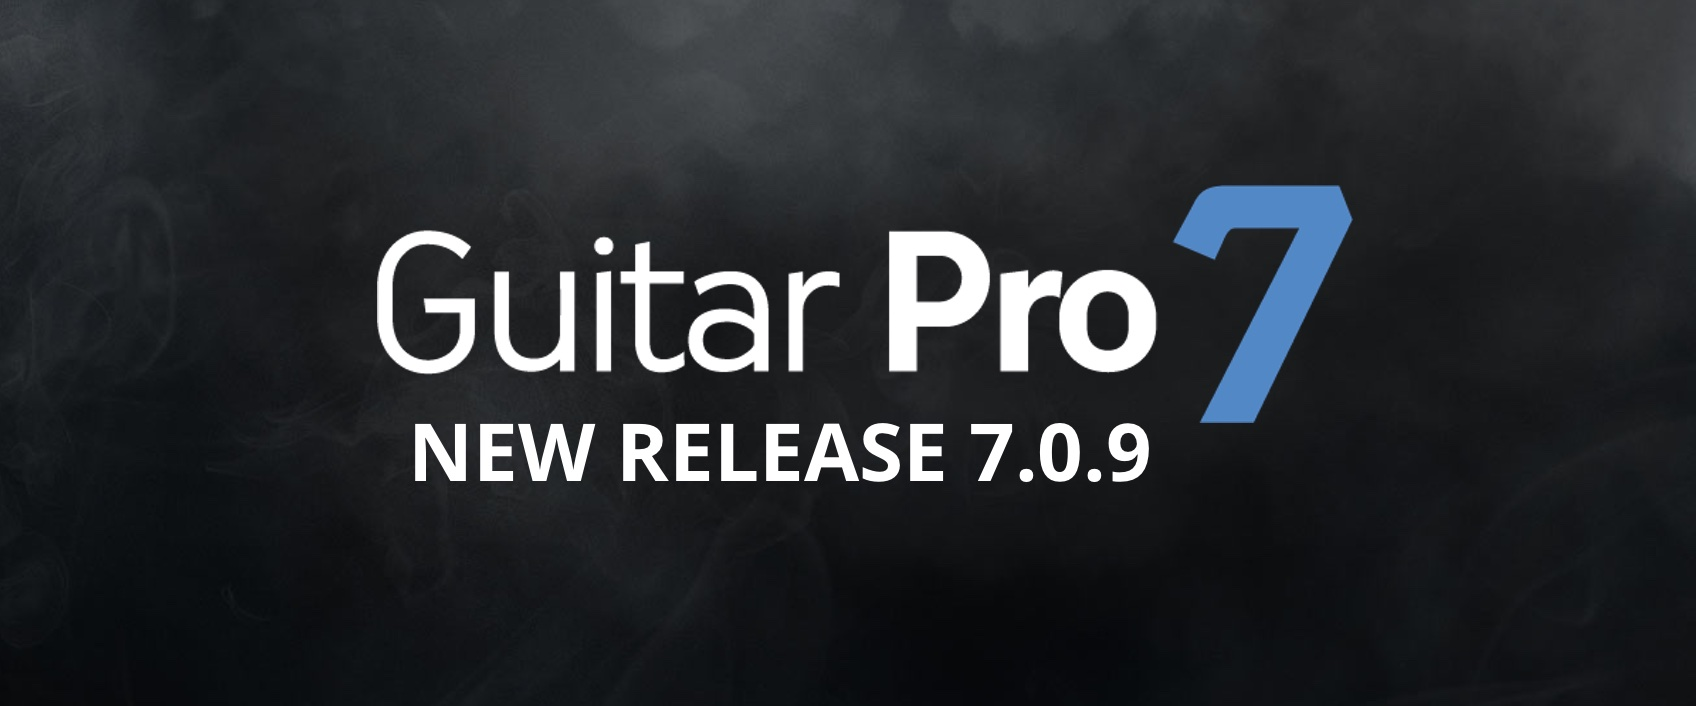 Guitar Pro 7.0.9 is available